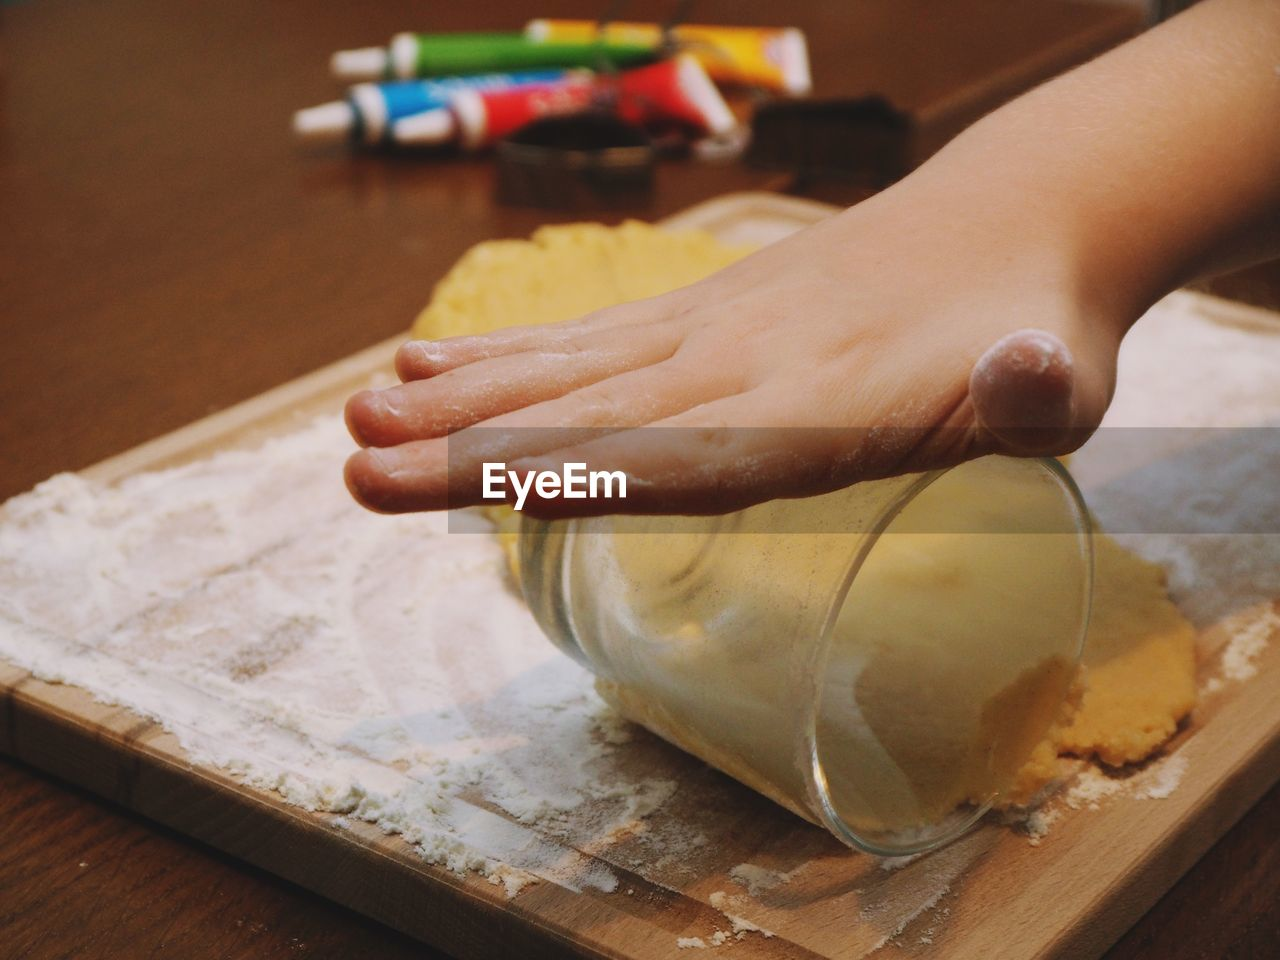 human hand, human body part, hand, real people, one person, food, preparation, table, food and drink, indoors, unrecognizable person, dough, close-up, freshness, cutting board, lifestyles, preparing food, wood - material, holding, finger, kneading, human limb